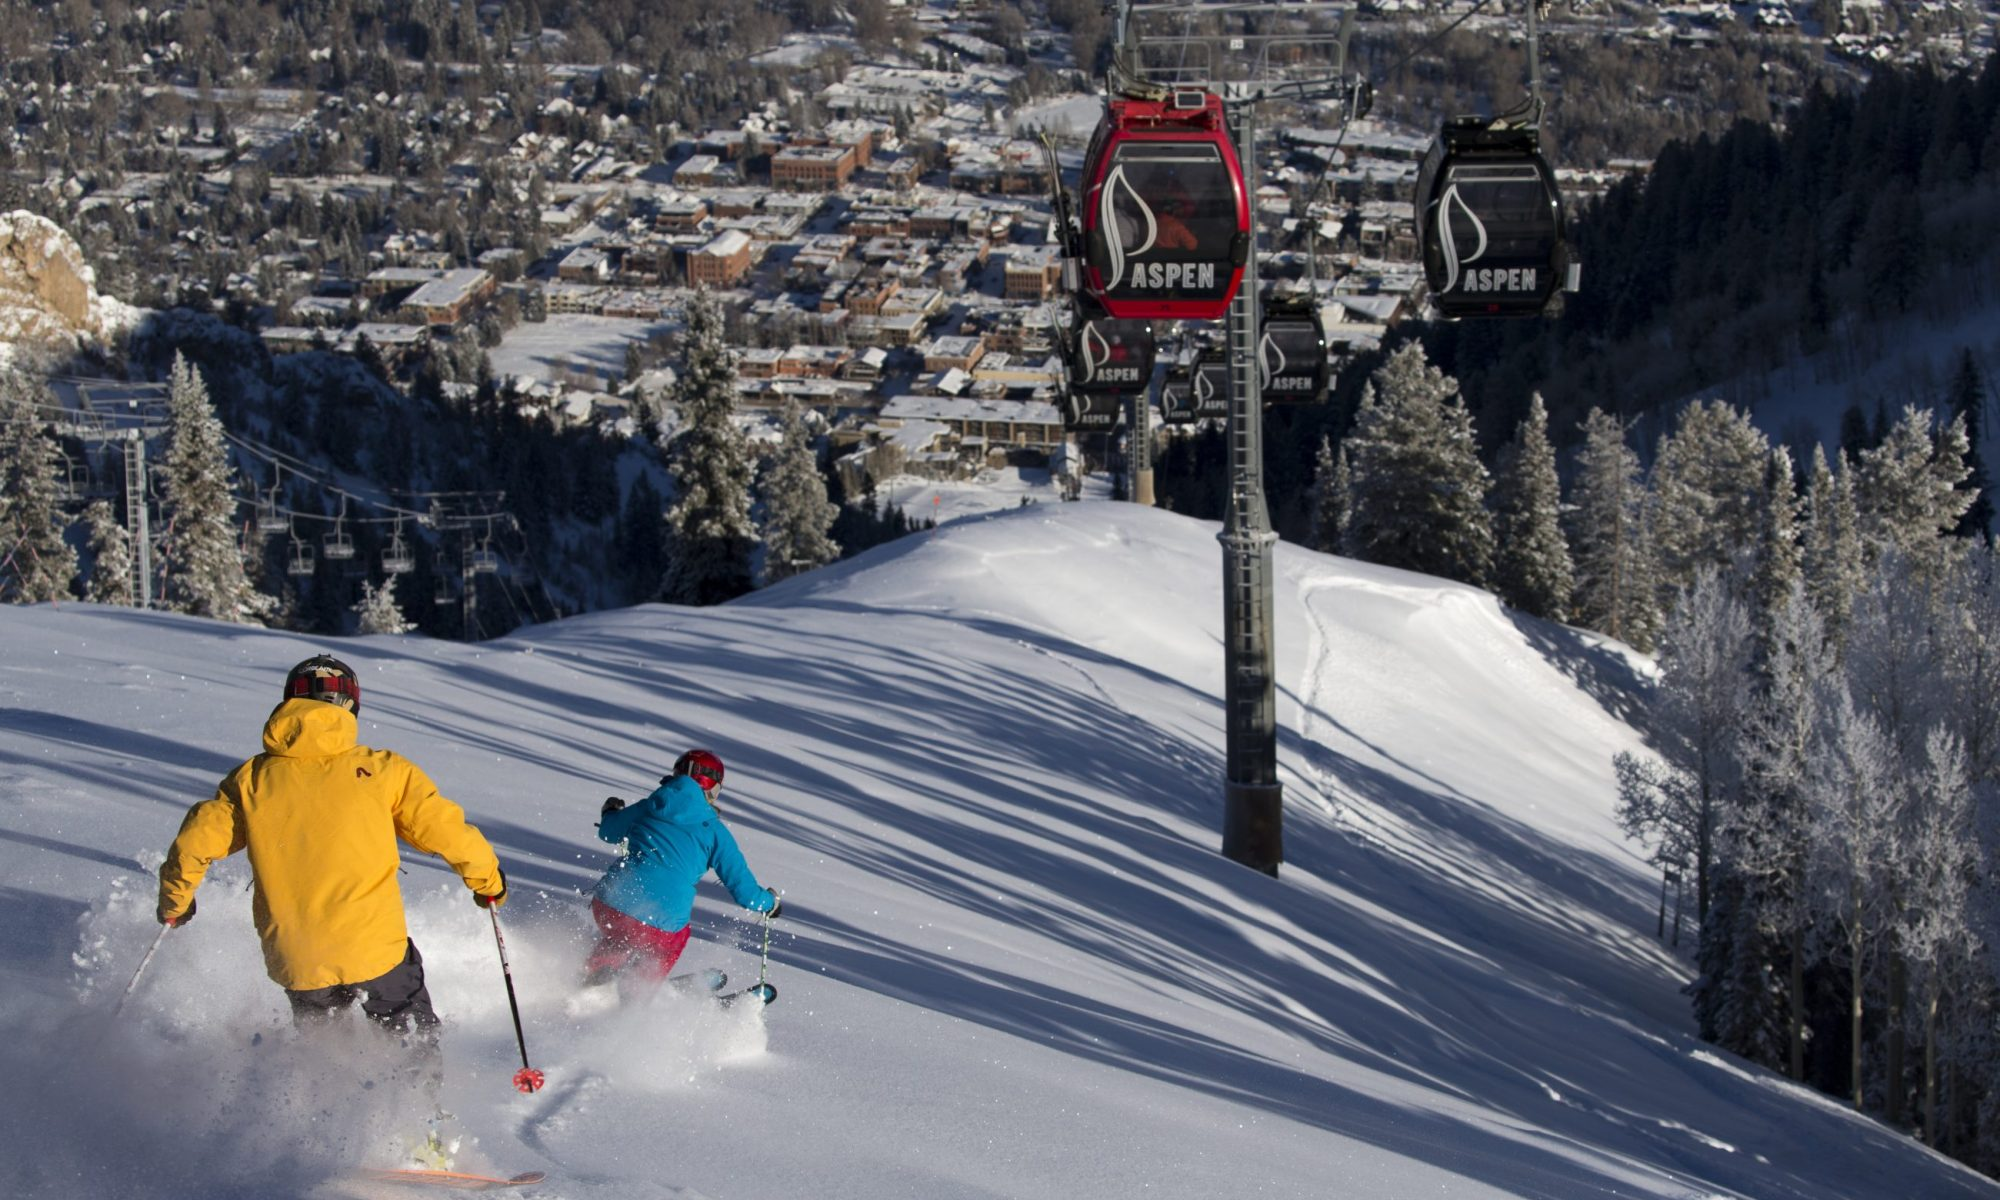 Aspen is number 8th in the list of most expensive ski resorts in the USA. The most expensive ski resorts in the USA.